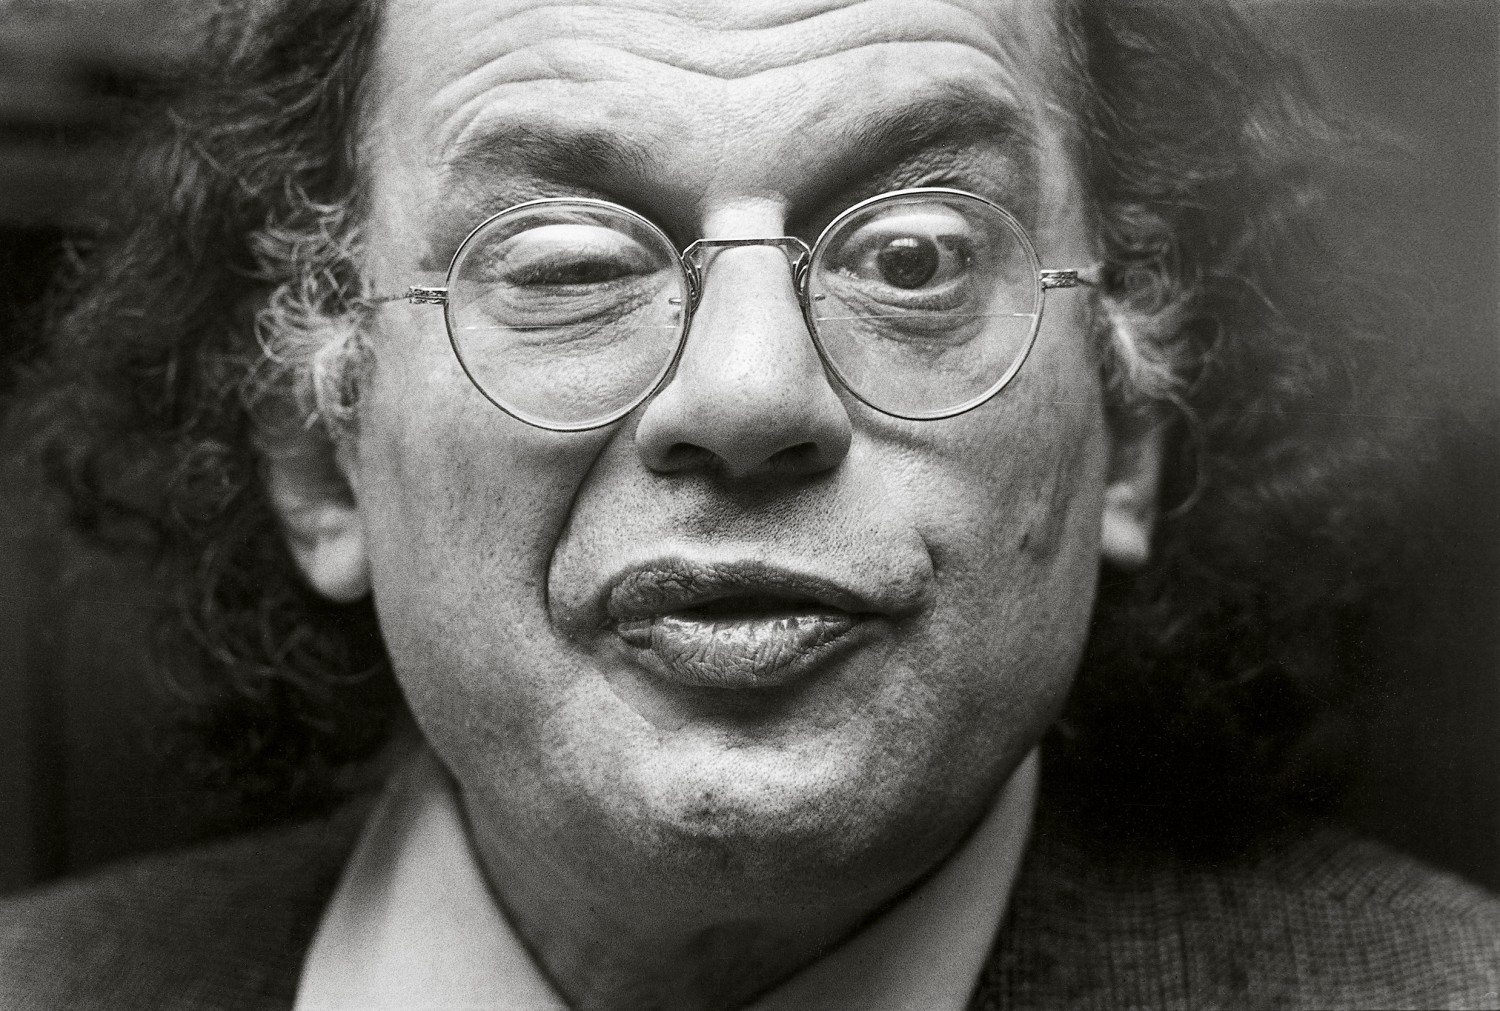 Allen Ginsberg: A Literary Icon Who Resided Downtown